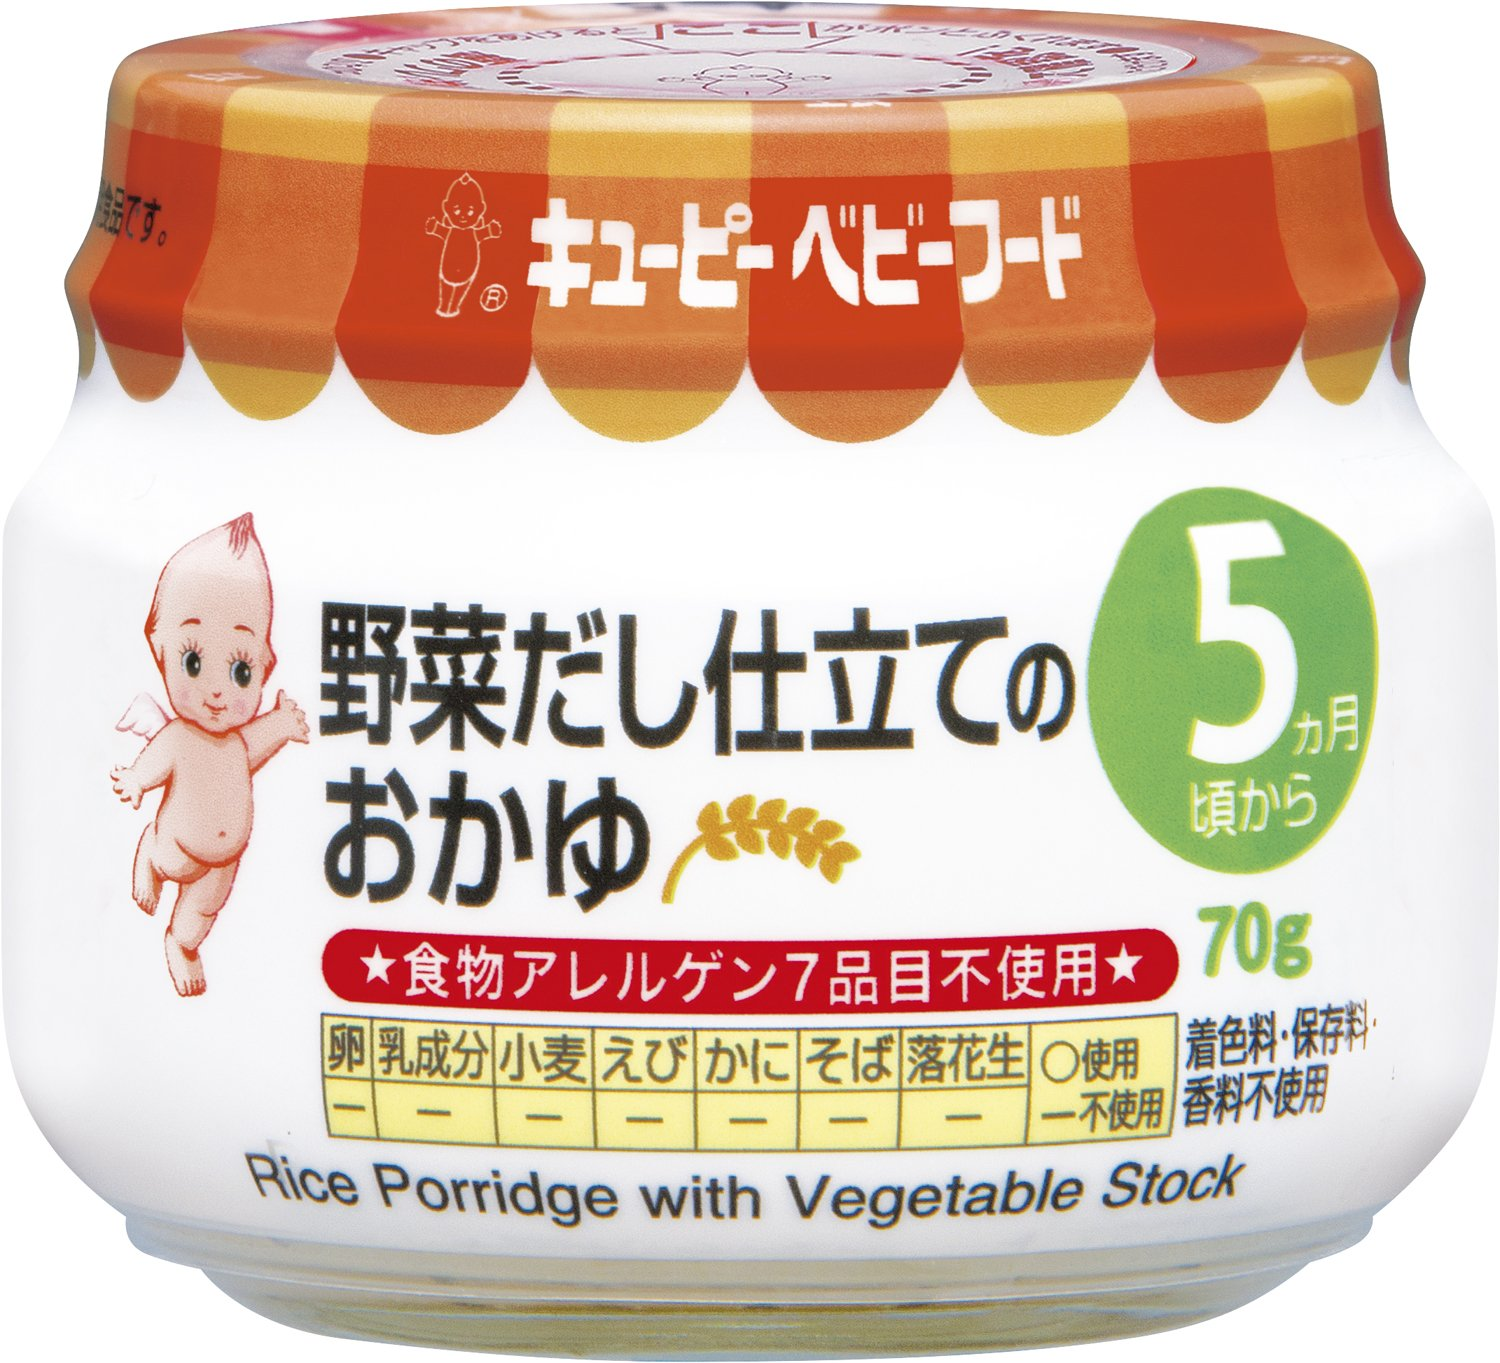 It's Kewpie M-59 vegetables 70gX12 or porridge of tailoring by Kewpie Mayonnaise